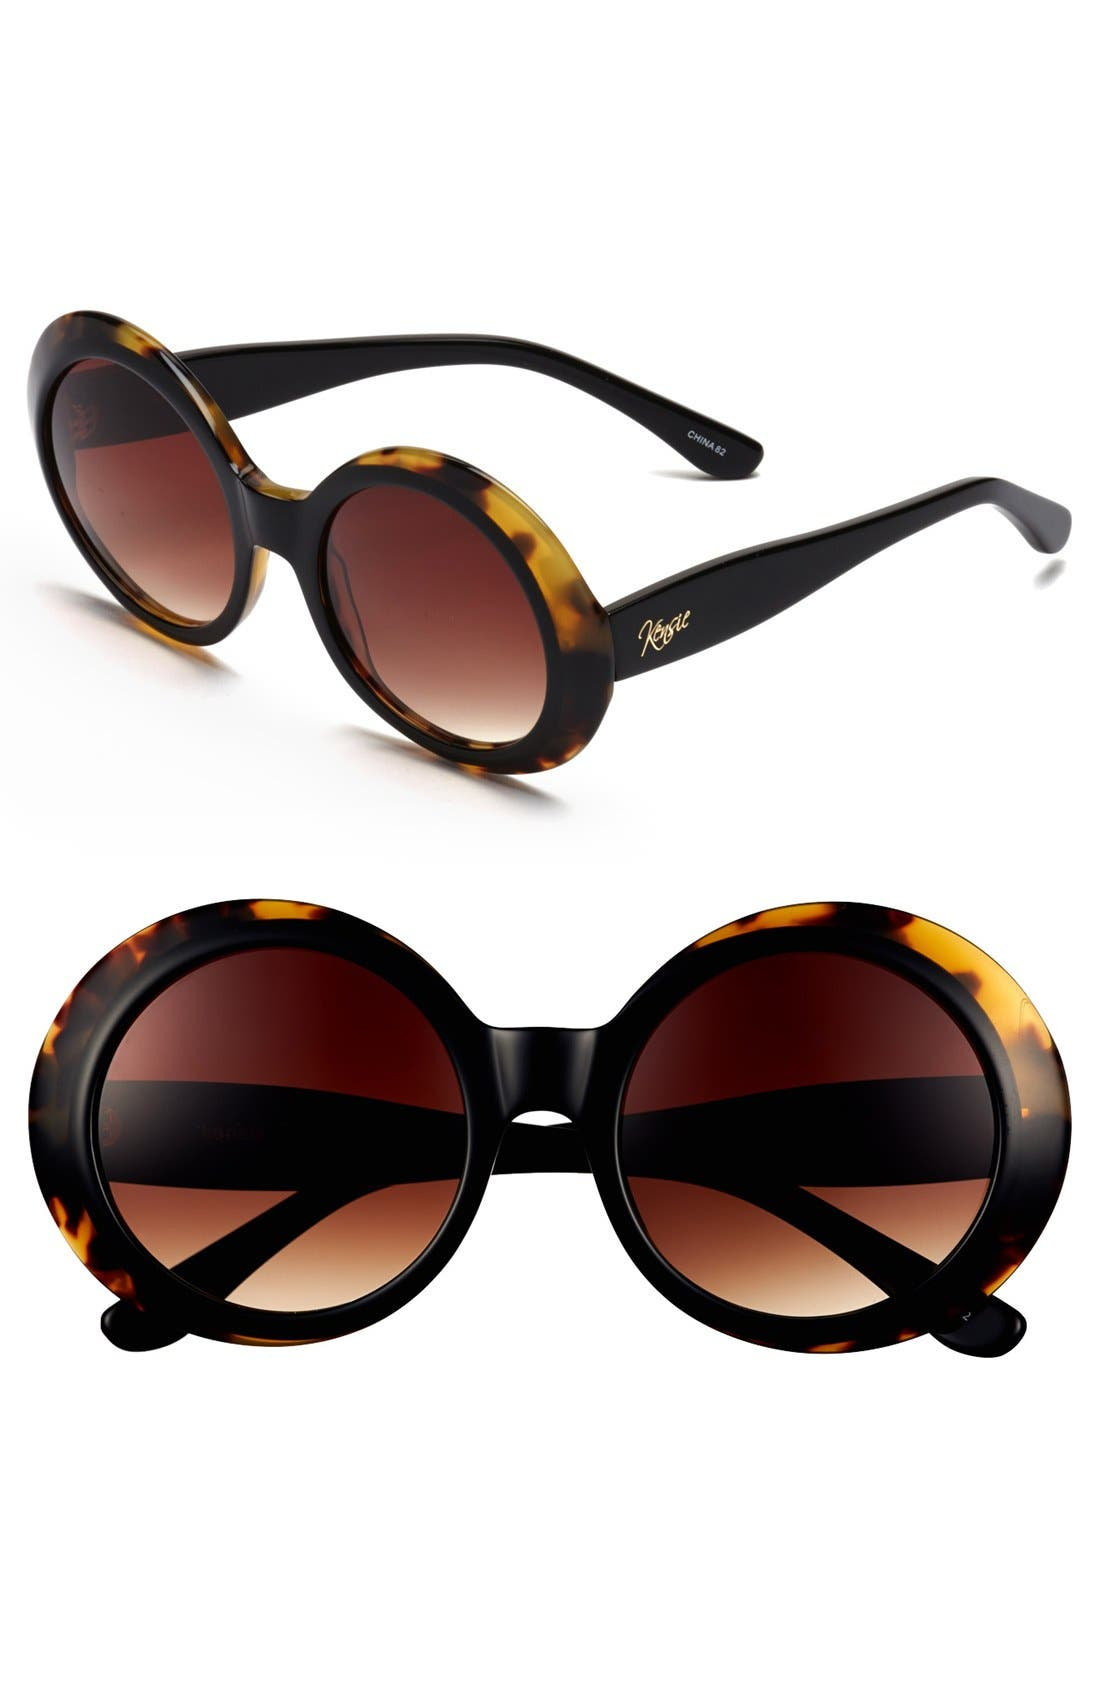 Main Image - kensie 'Neve' 50mm Oversized Sunglasses